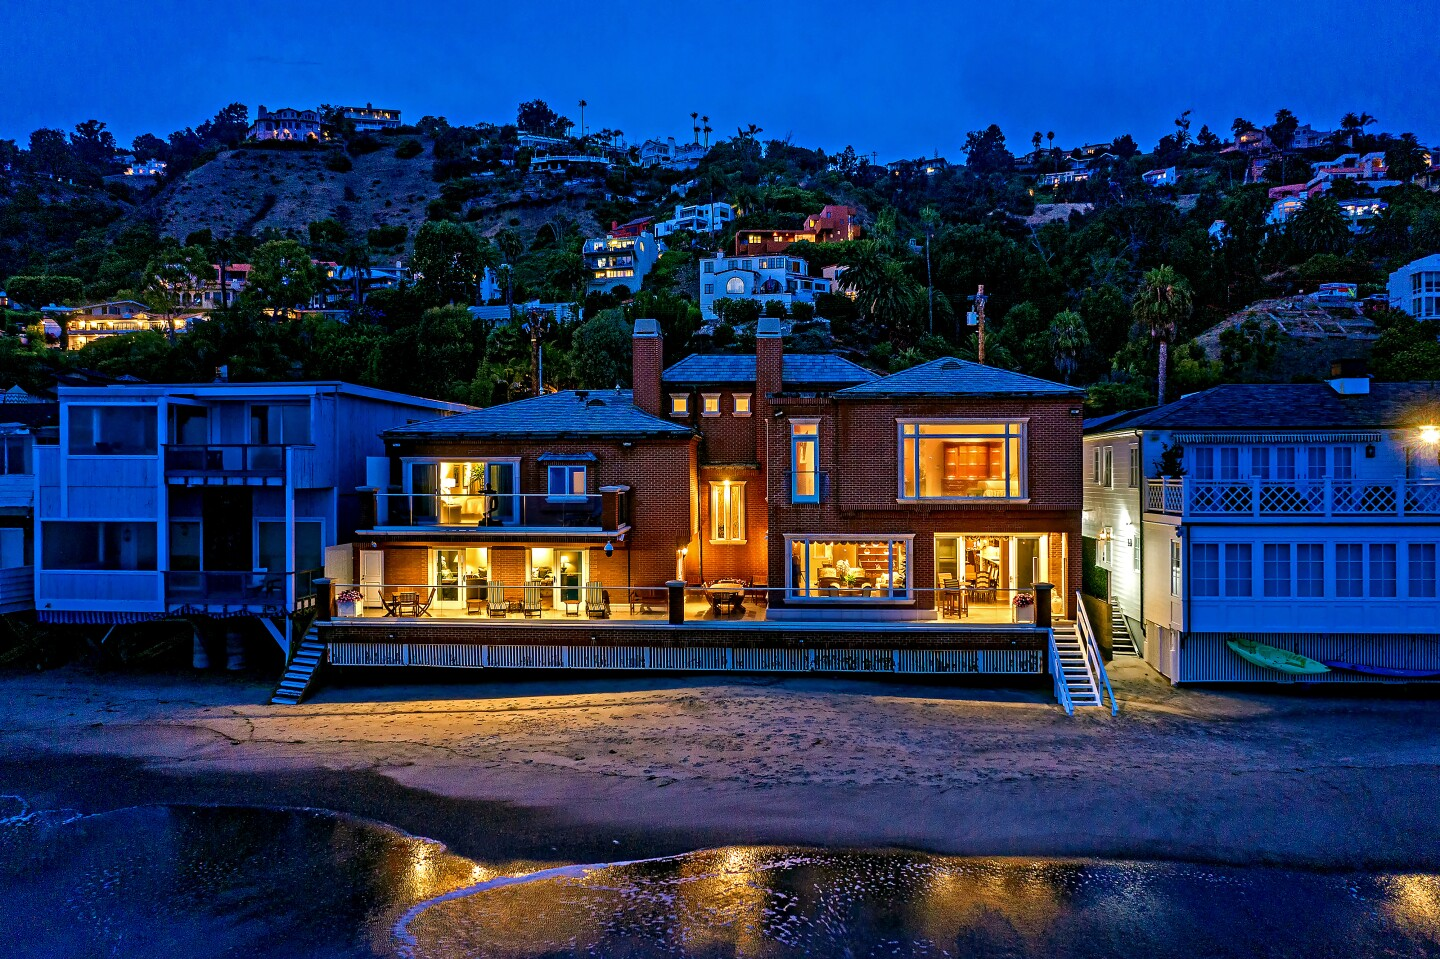 Socialite Candy Spelling has listed her oceanfront home in Malibu for sale at $23 million. The brick-clad residence sits on 81 feet of beach frontage on La Costa Beach. Inside, rooms features limestone floors, crown molding and other custom details.